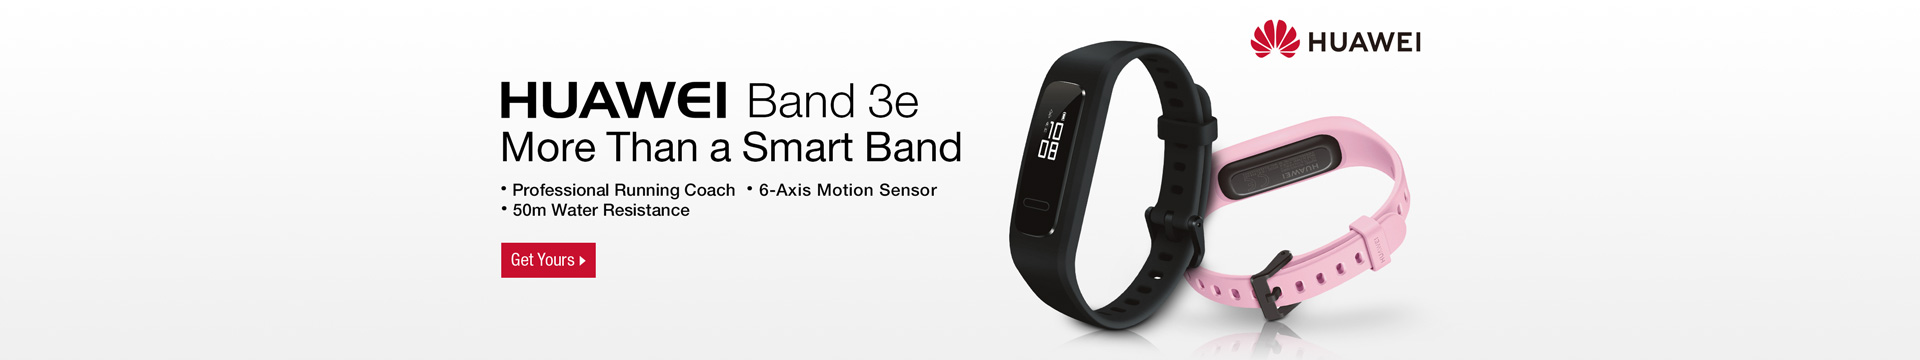 More Than a Smart Band